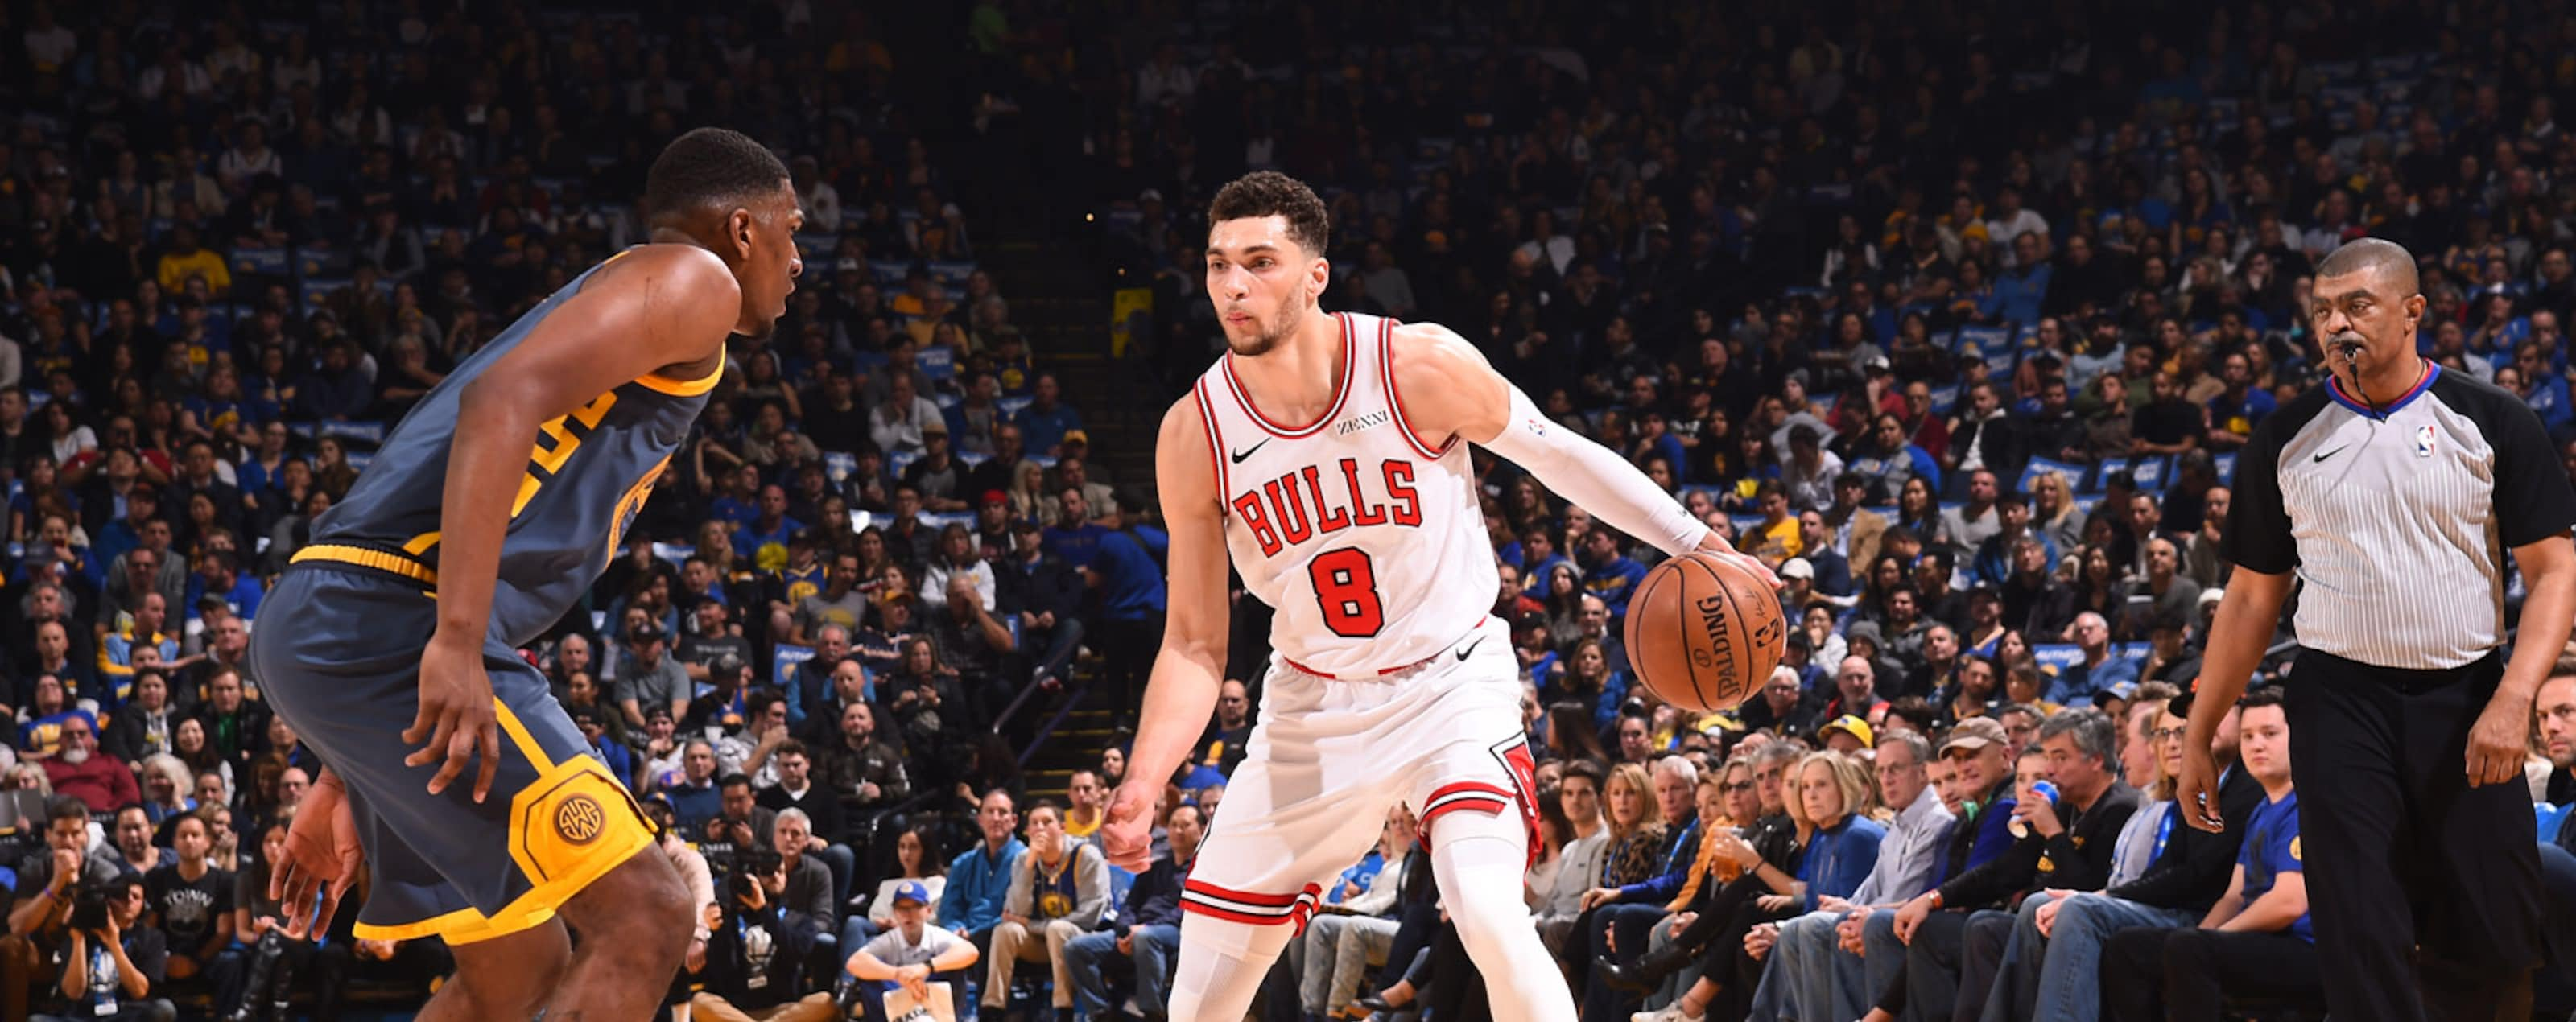 Zach LaVine #8 of the Chicago Bulls handles the ball against the Golden State Warriors on January 11, 2019 at ORACLE Arena in Oakland, California.